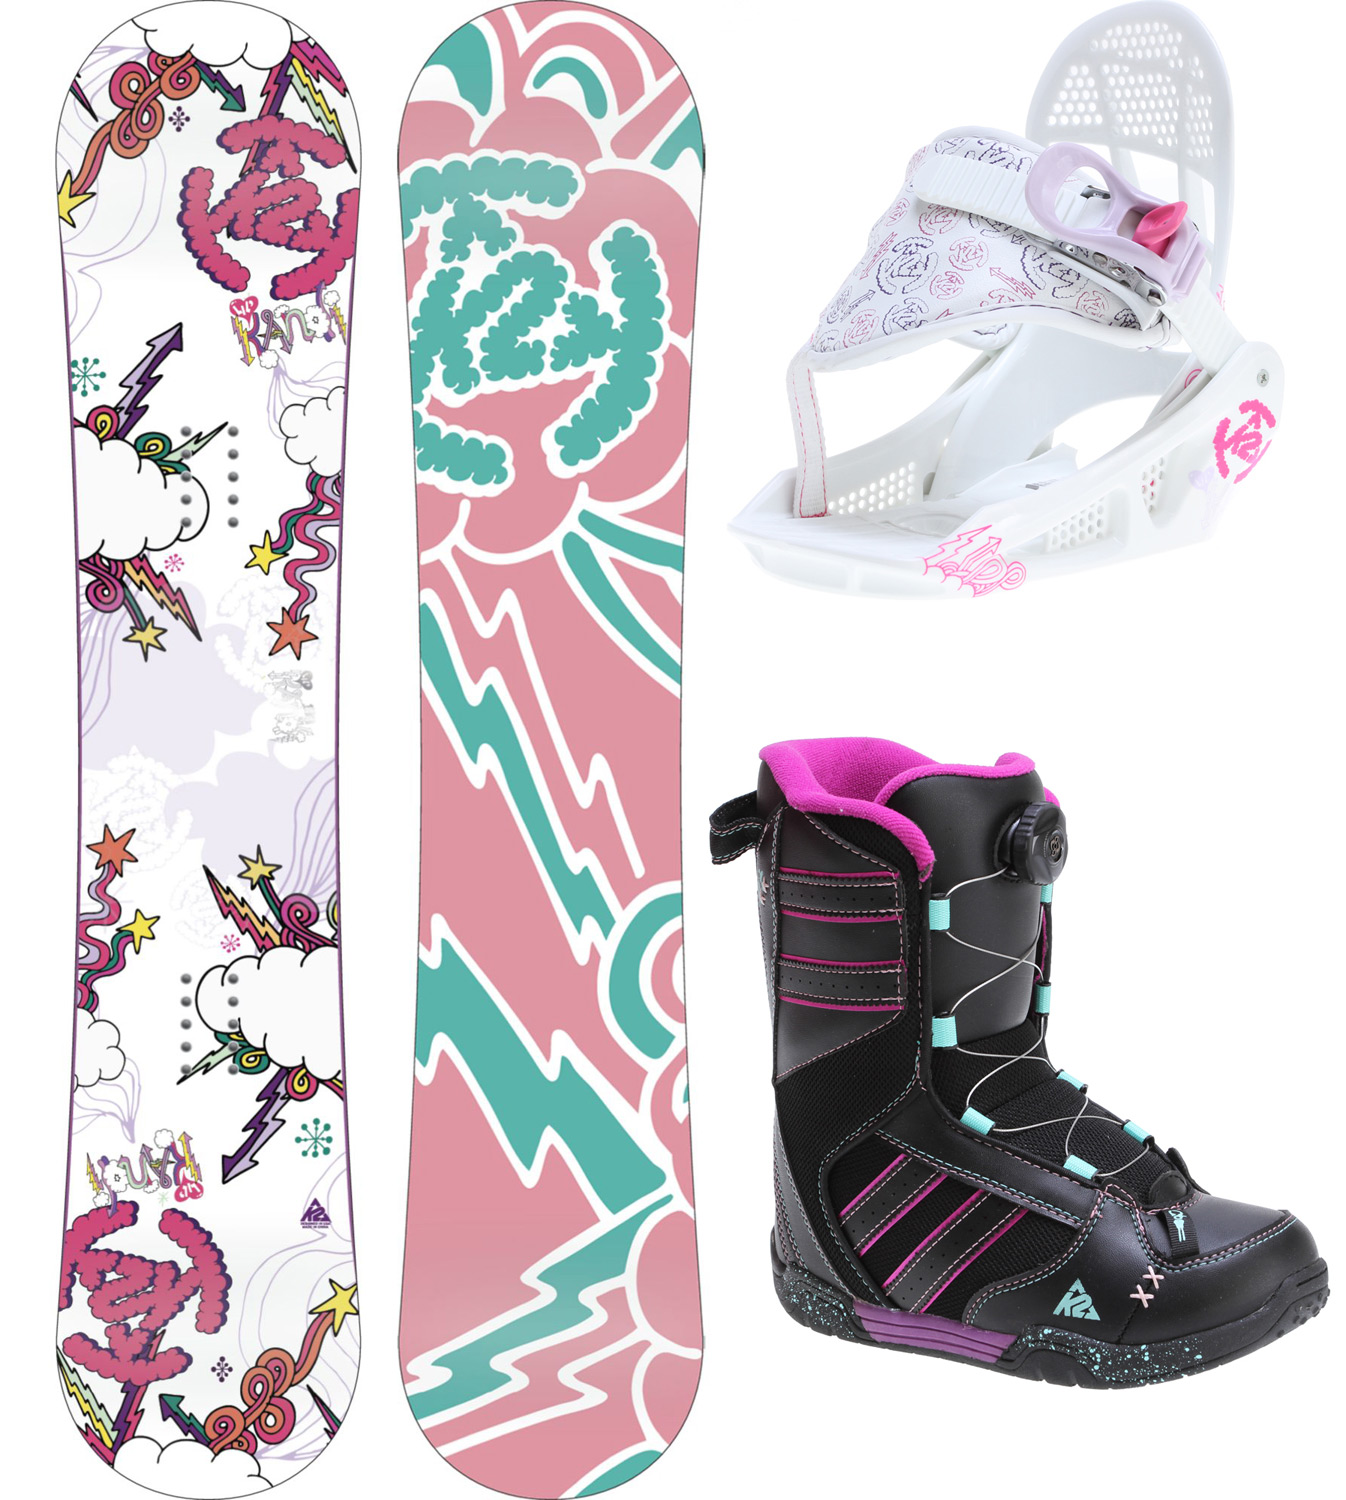 "Snowboard The original all-in-one kids package, the Grompack is design with  both kids and parents in mind. Little rippers will learn quickly, stay  comfy and do it all on their own with features like Boa boot lacing, a  Noodle board Construction and one strap binding. Parents can rest  easy that the setup will last for more than a season with Grows-a-long  boots and bindings. It all adds up to great days on the mountain with  the kids.Key Features of the K2 Lil Kandi Grom Pack Snowboard w/ Boots/Bindings: BASELINE: Catch Free Rocker CONSTRUCTION: Hybrilight Noodle SHAPE: Twin Dual Progressive STANCE: Centered CORE: Noodle GLASS: Biax / Biax BASE: 2000 Extruded BASE: 3"" LINER FIT: Boa LACING SYSTEM: Internal J- Bars OUTSOLE: Heel & Tongue Pull for easy entry FOOTBED: EVA Insole CHASSIS: Groms Chassis HIGHBACK: Grom Highback ANKLE STRAP: Single Strap RATCHET: EZ Feed Boot Flex: 1 - $200.97"